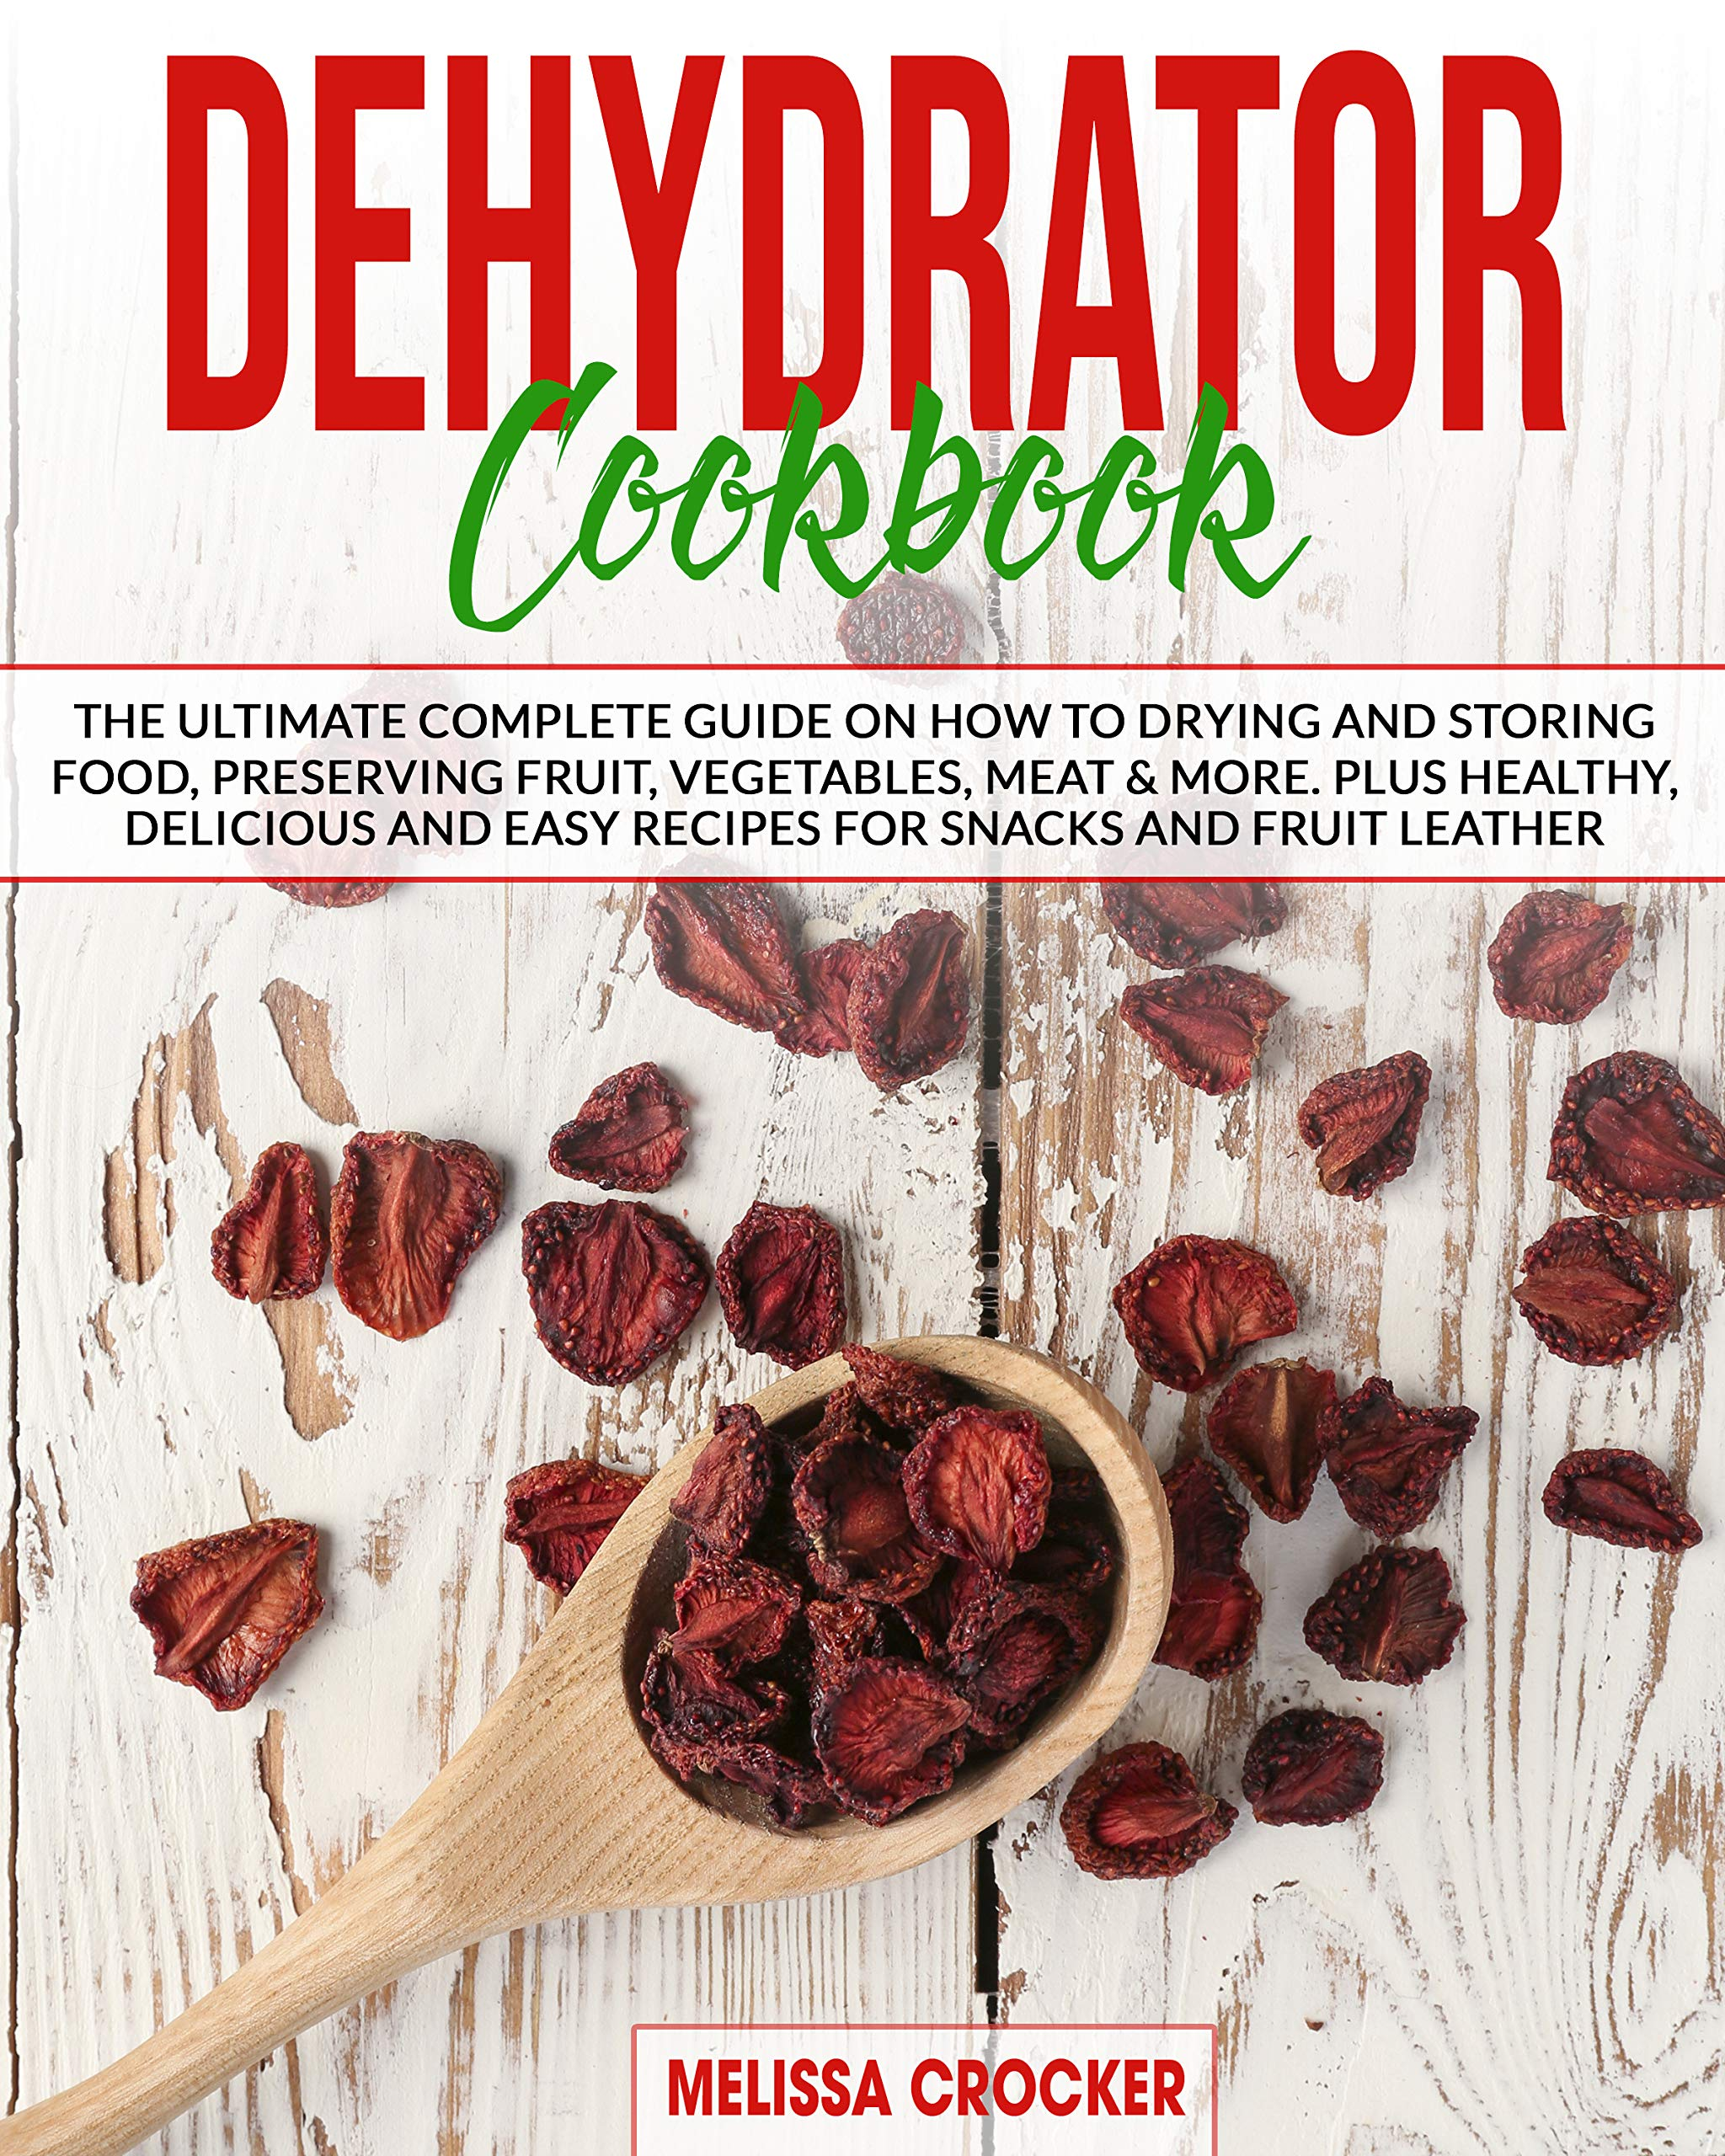 Dehydrator Cookbook: The Ultimate Complete Guide on How to Drying and Storing Food, Preserving Fruit, Vegetables, Meat & More. Plus Healthy, Delicious and Easy Recipes for Snacks and Fruit Leather.